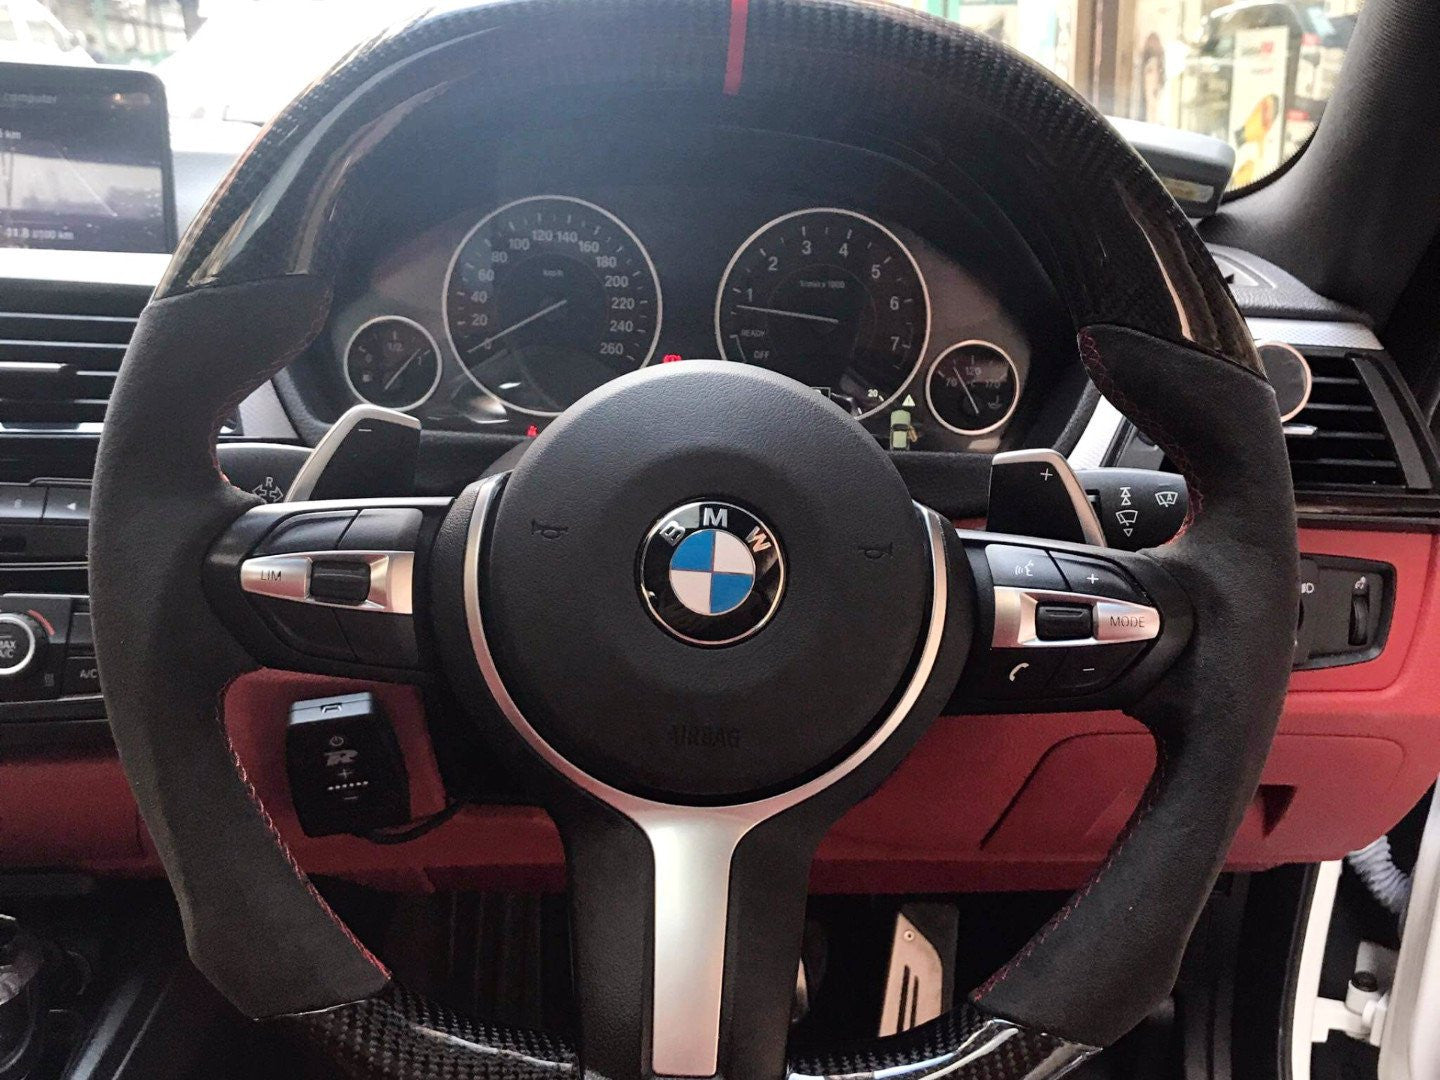 Coupe Series bmw m performance steering wheel BMW M PERFORMANCE CARBON FIBER STEERING WHEEL – Yomato Carbon